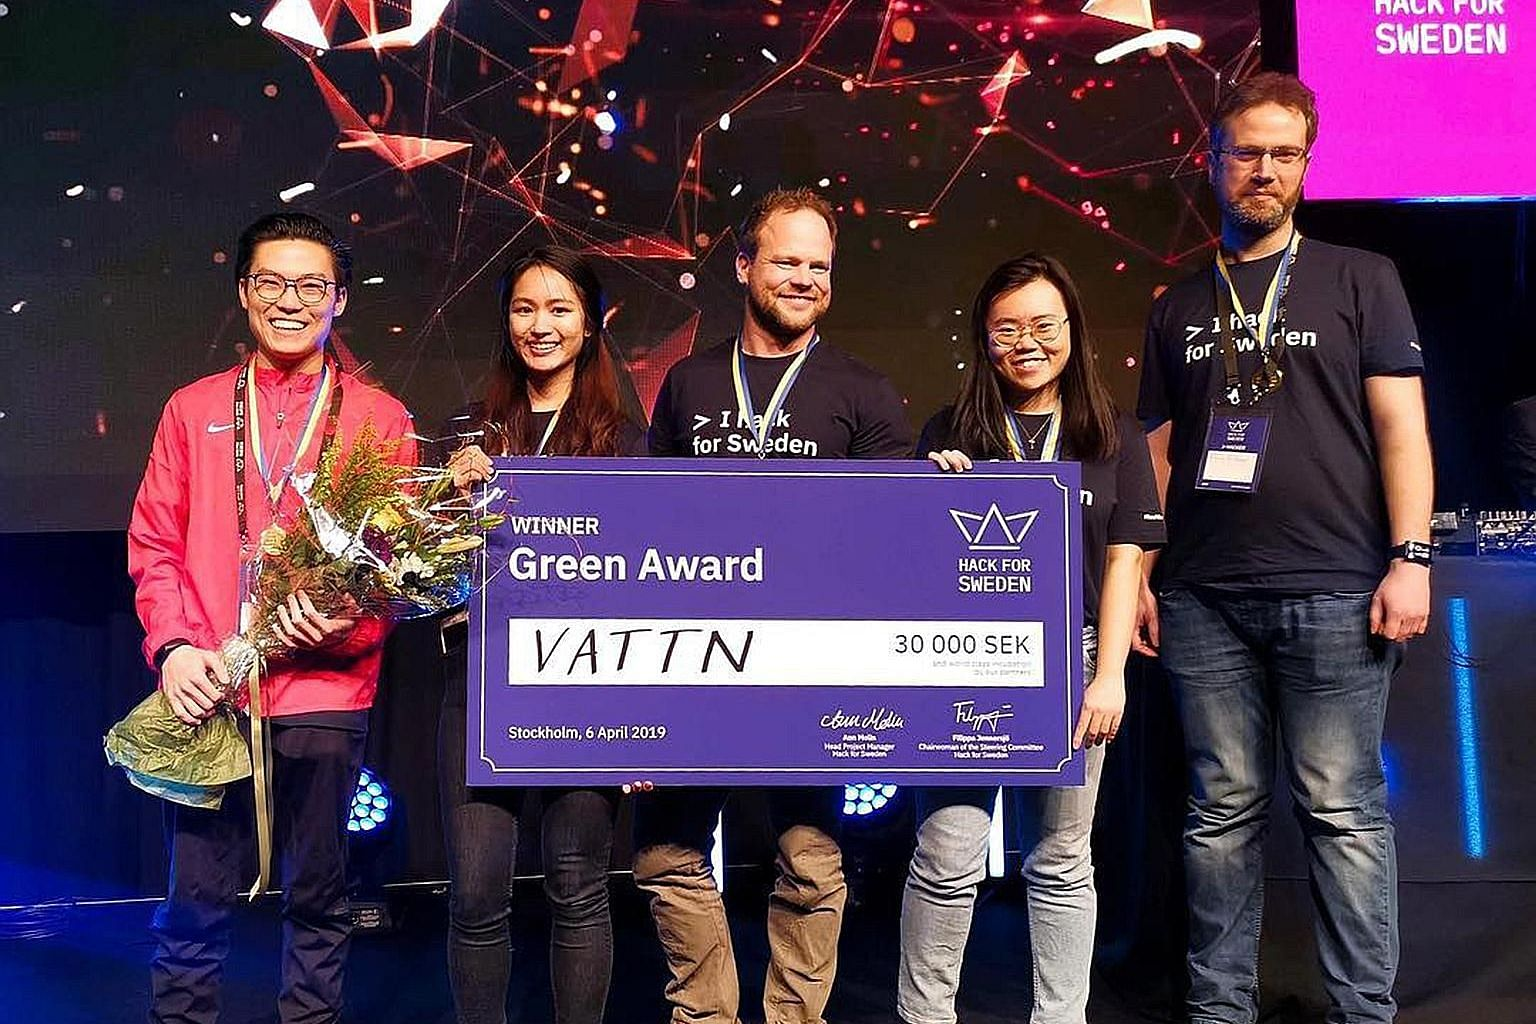 (From left) Mr Adelric Wong, Ms Yanisa Suratpipit, Mr Daniel Andersson, Ms Neo Ann Qi and Mr Philip Eriksson of Team Vattn. They beat 75 other teams across six categories to bag the first prize of the Green Award at the three-day Hack for Sweden 2019